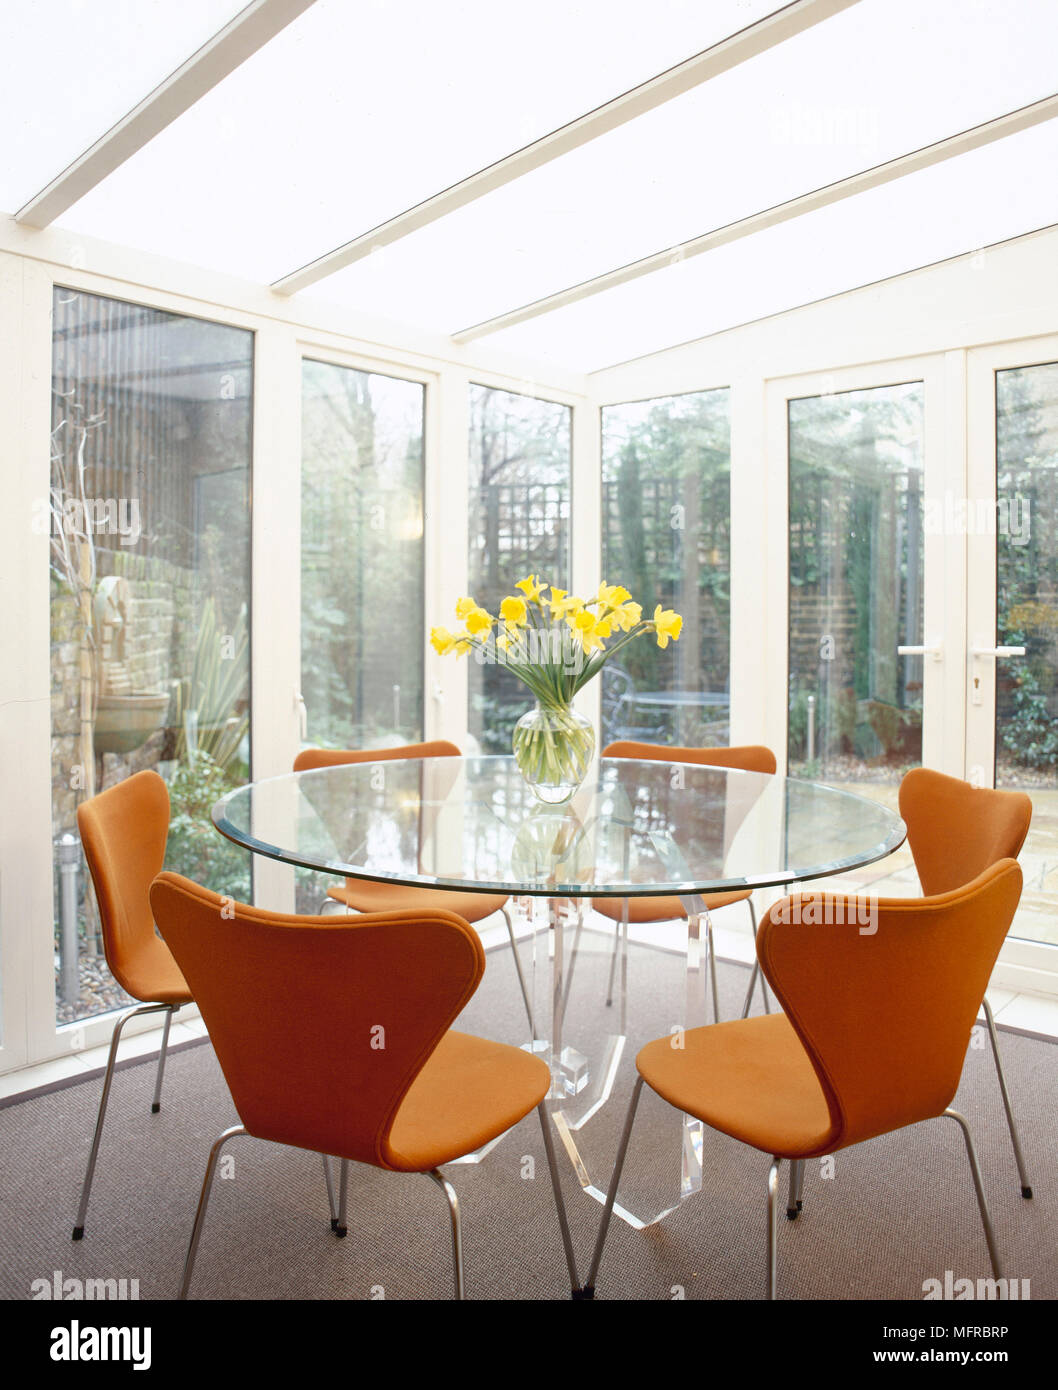 Awe Inspiring Modern Conservatory Dining Area With Glass Walls And Roof Uwap Interior Chair Design Uwaporg